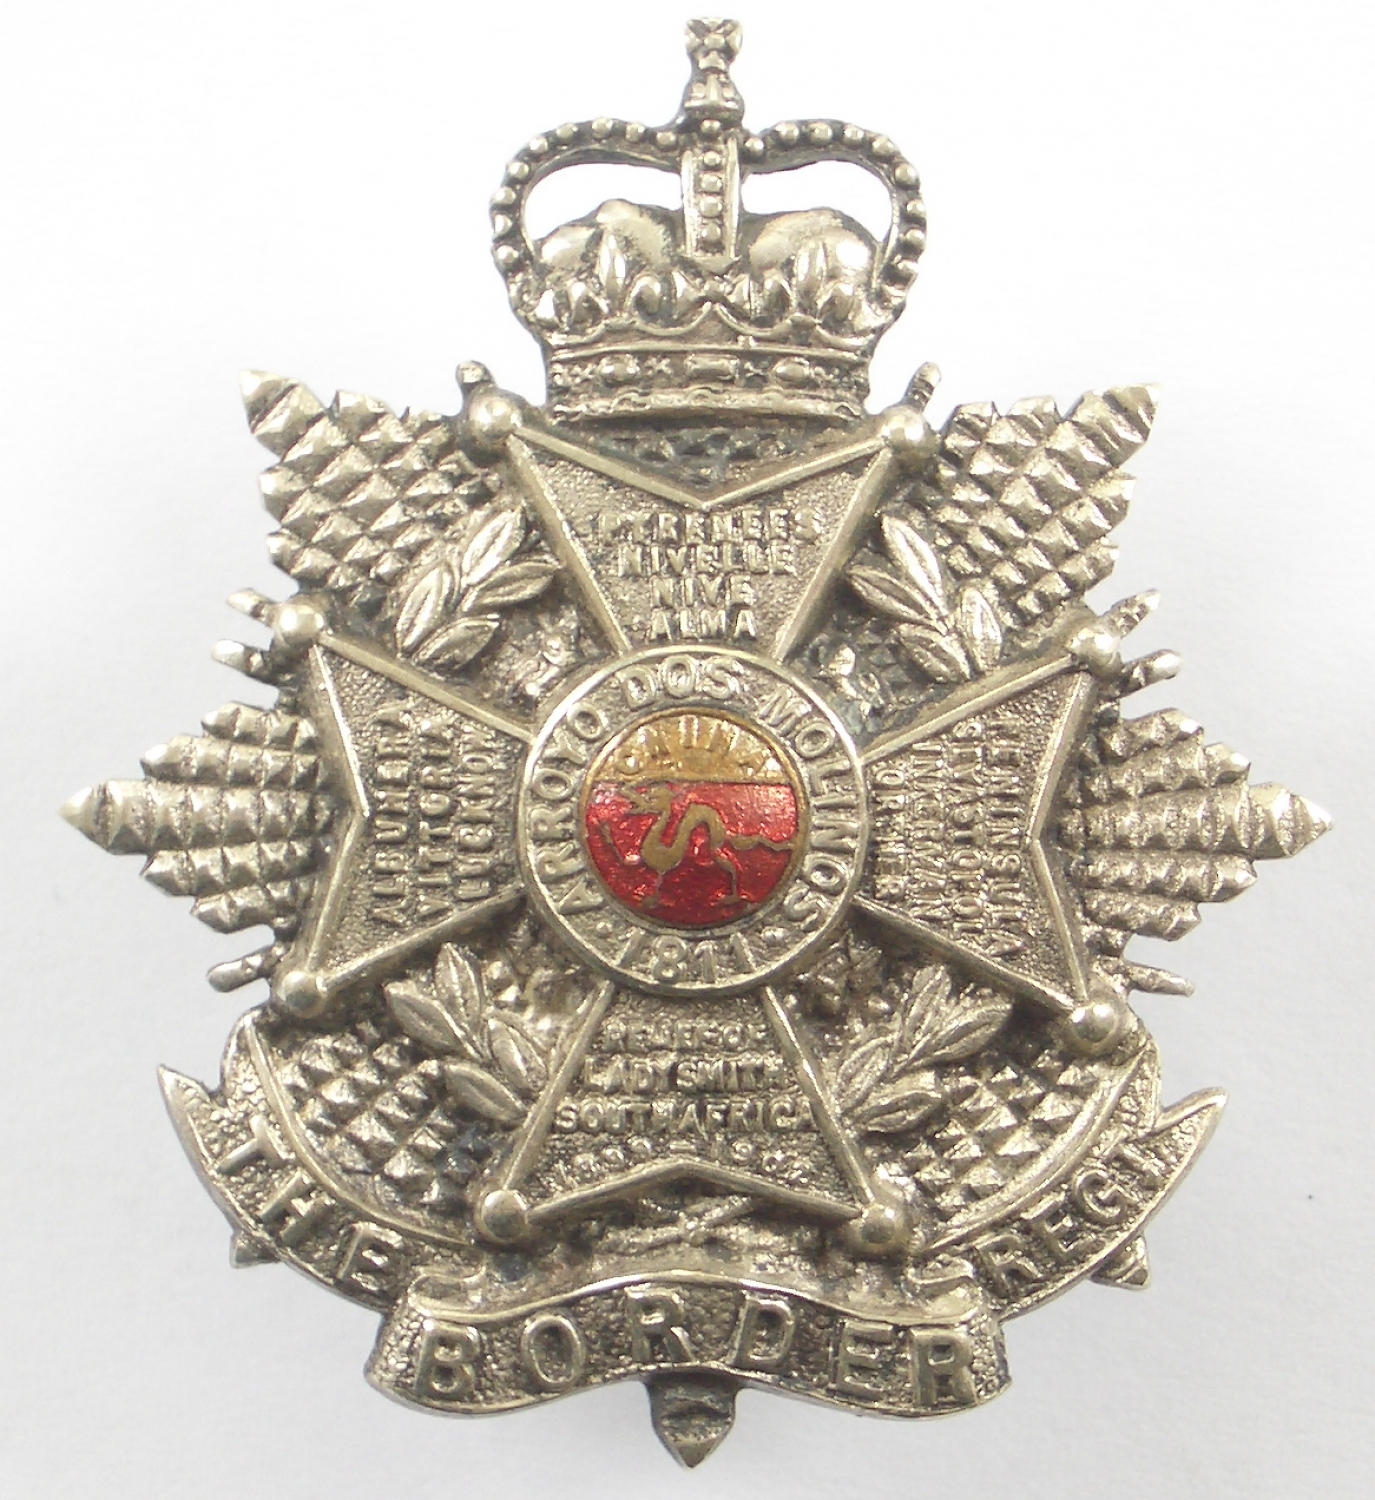 Border Regiment EIIR Officer's silvered & enamel cap badge.